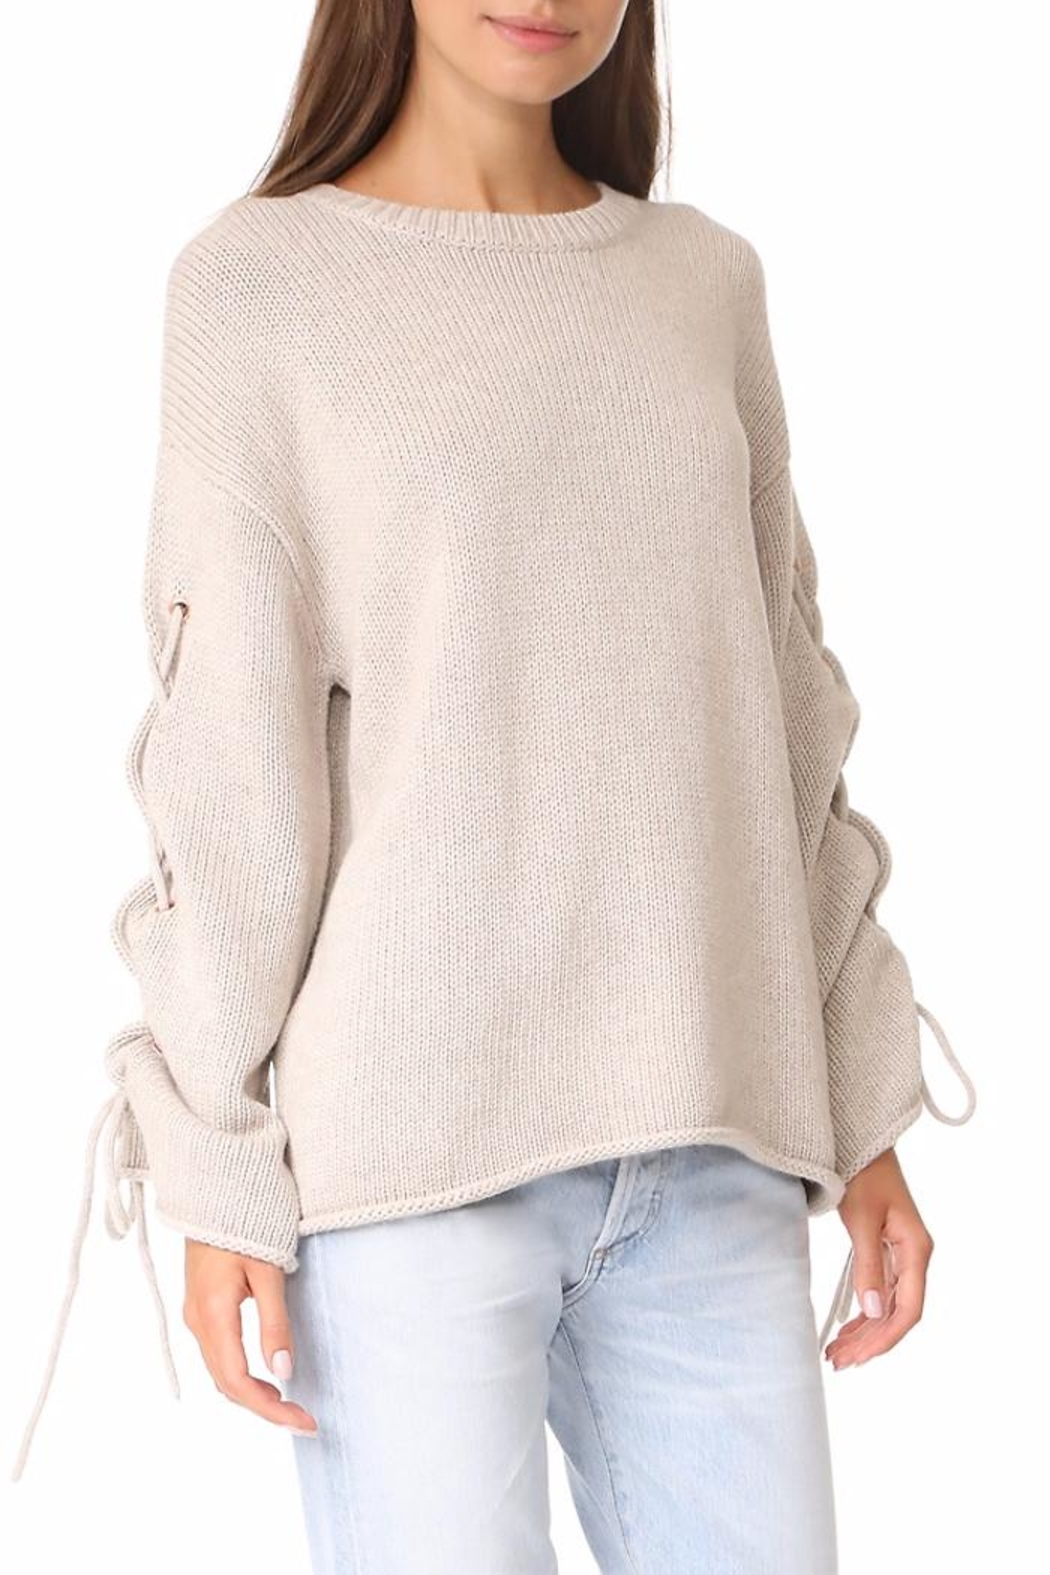 People Outfitter Ailbe Lace Up Sweater - Side Cropped Image